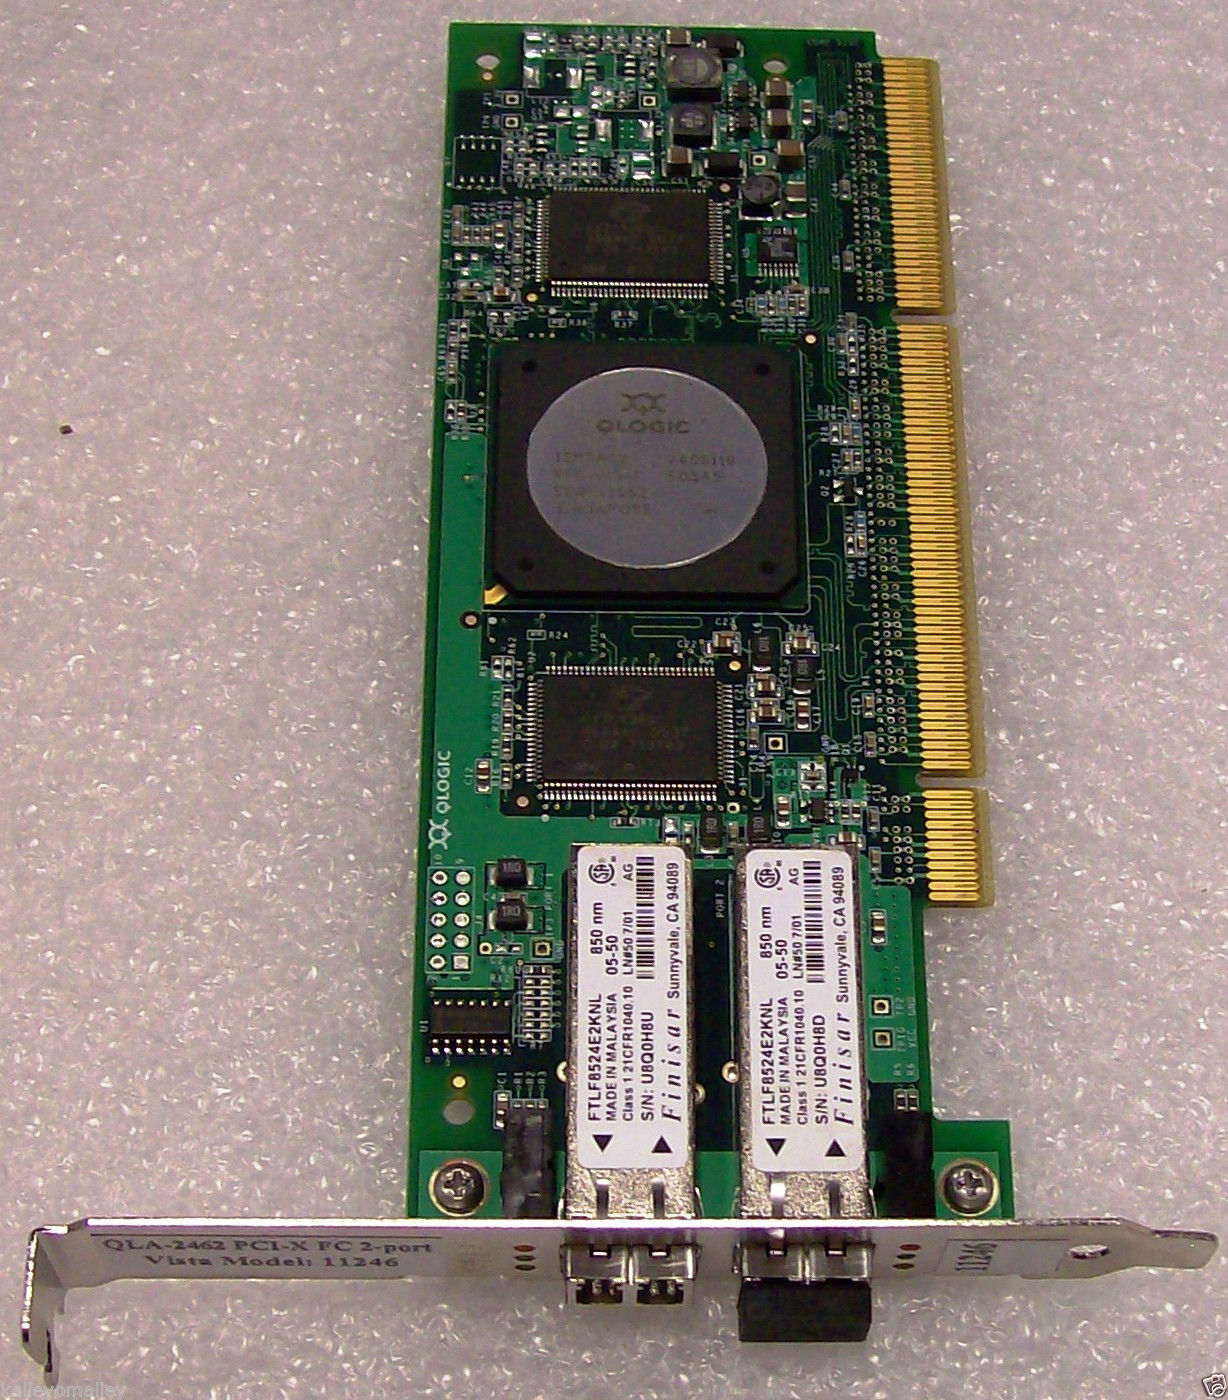 Qlogic QLA2462 SANBLADE 64-bit 266MHz PCI-X to 4Gb Dual Fibre Channel Adapter